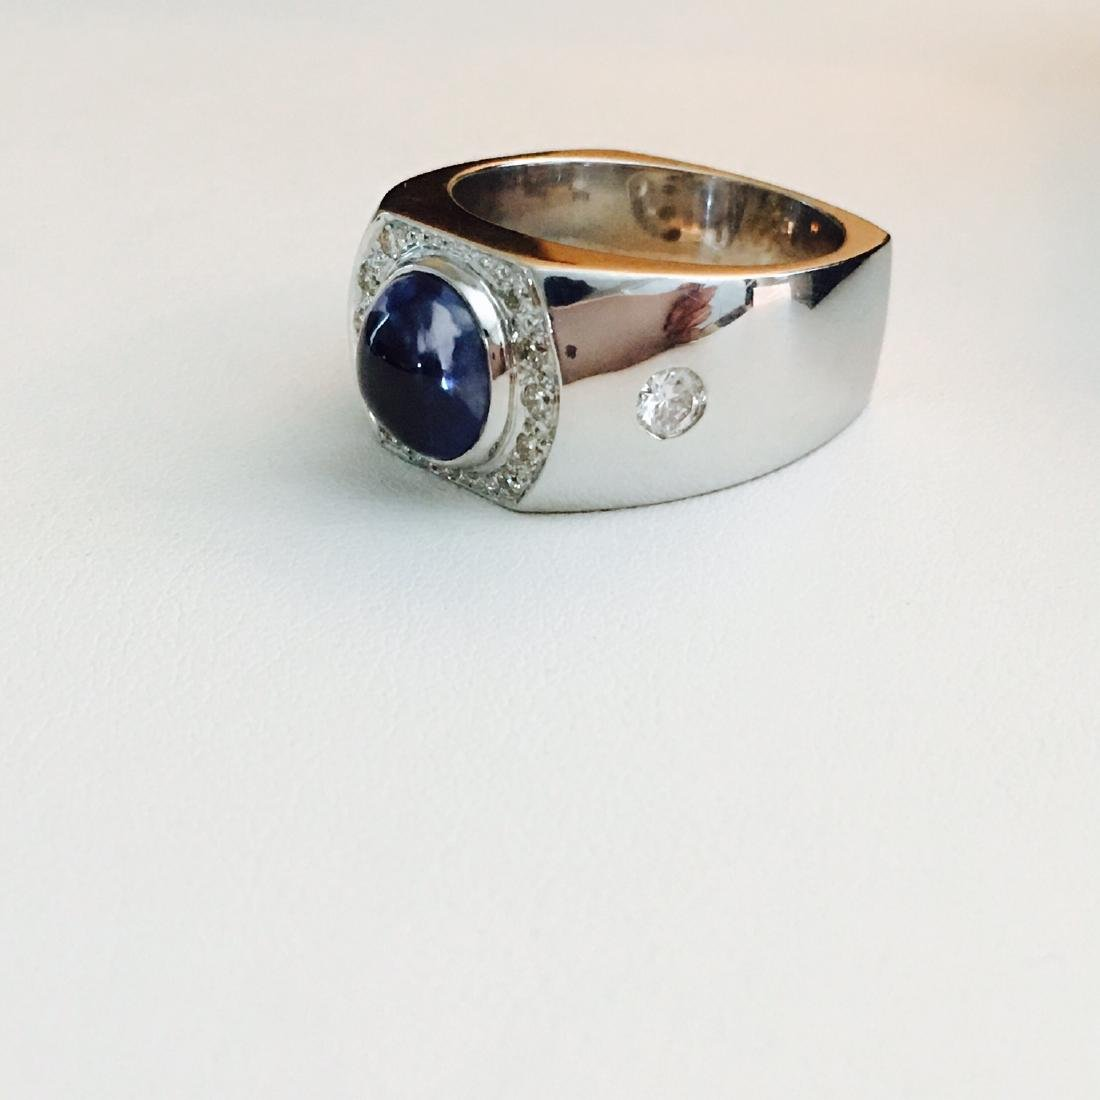 3.50 CT Blue Sapphire, VVS Diamonds in 18k gold ring. - 2